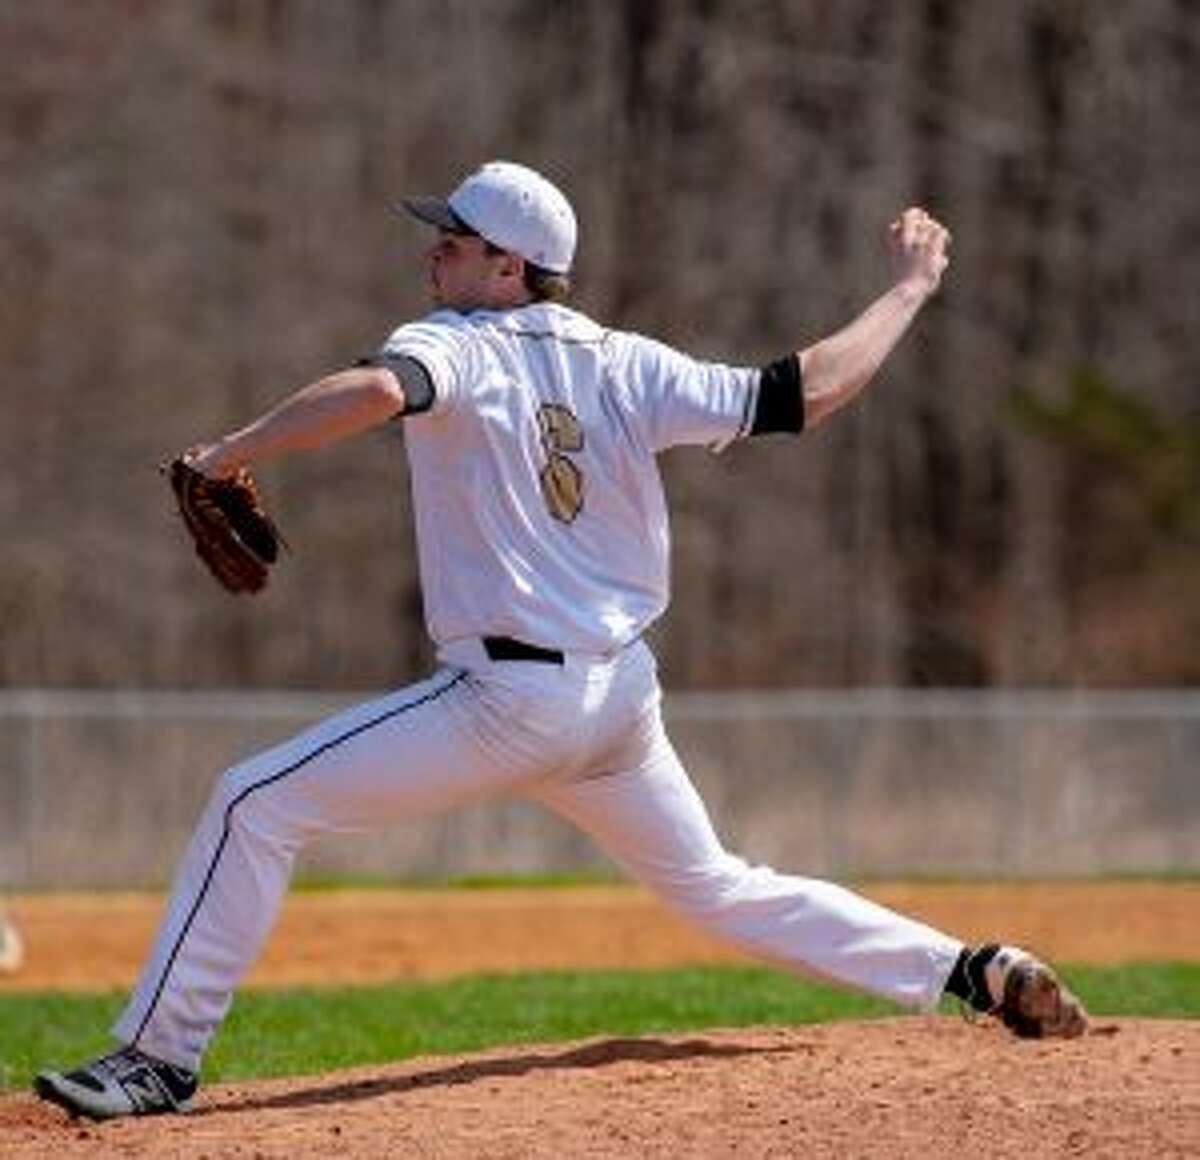 Ryan Gomes pitched six innings of scoreless baseball to win his third decision. - David G. Whitham photo